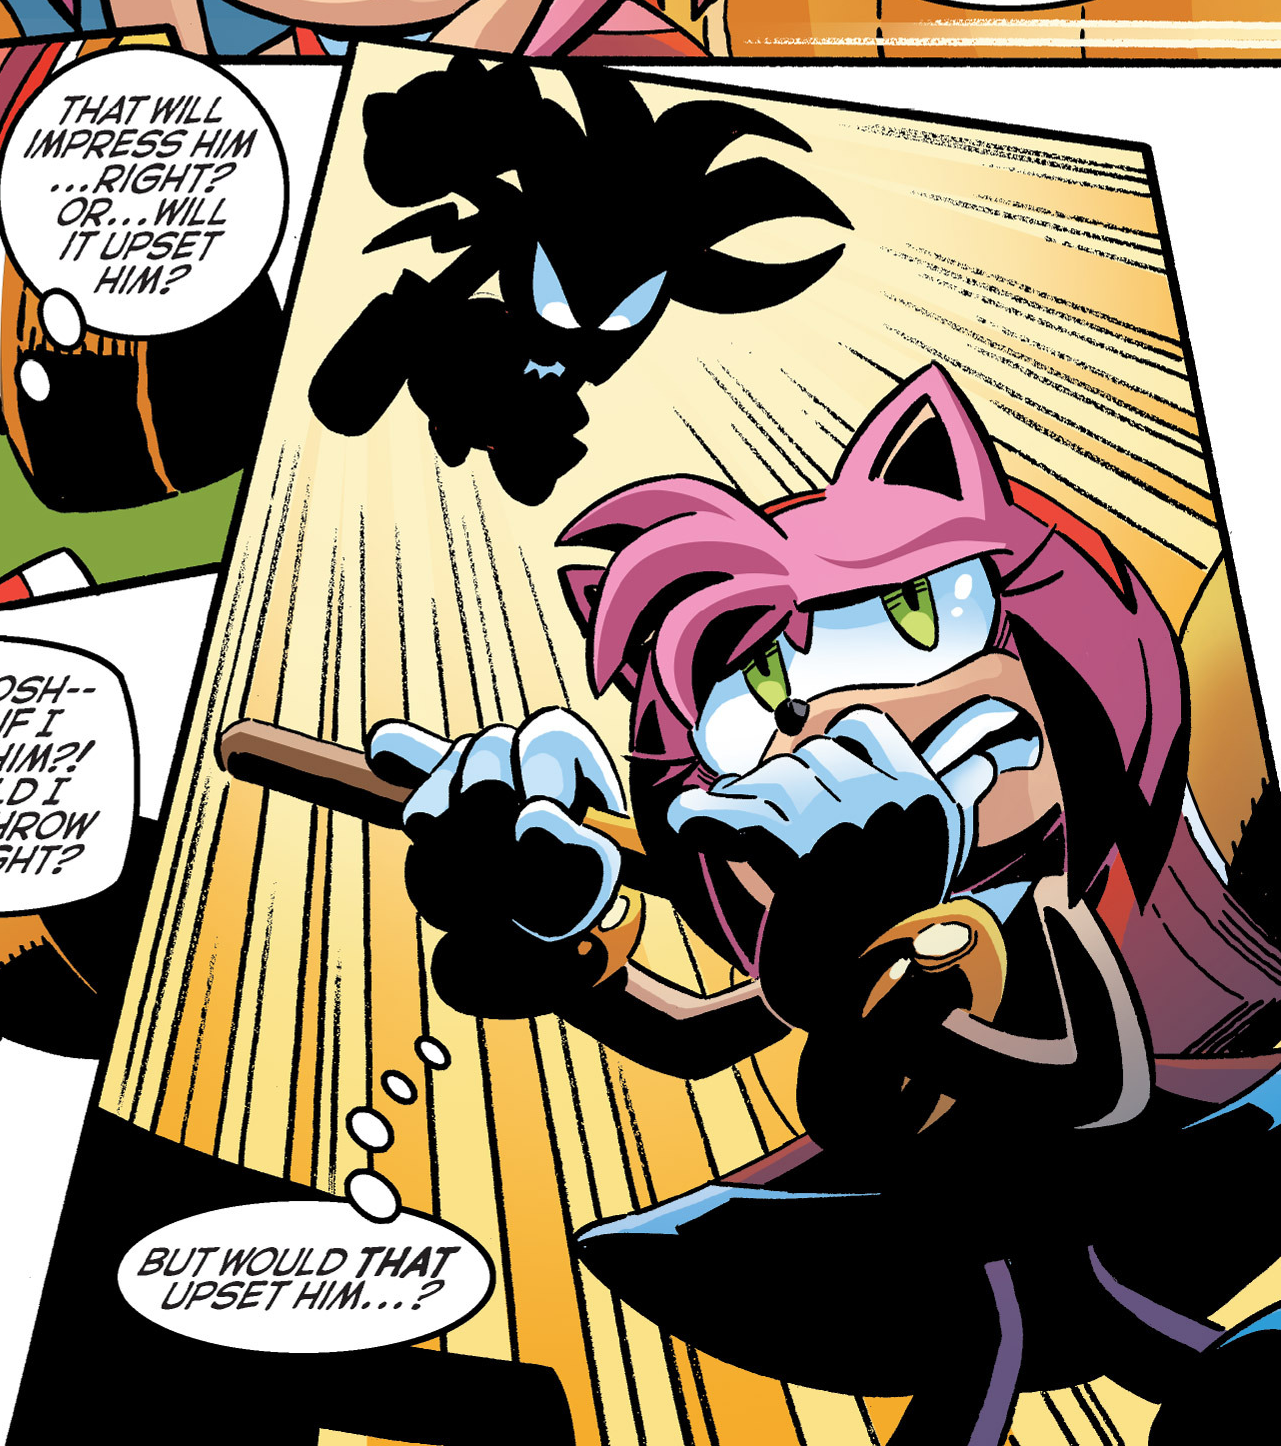 And Here We Can See The Flying Echidna About To Punch A Pink Hedgehog Face In Archie Sonic Comics Know Your Meme